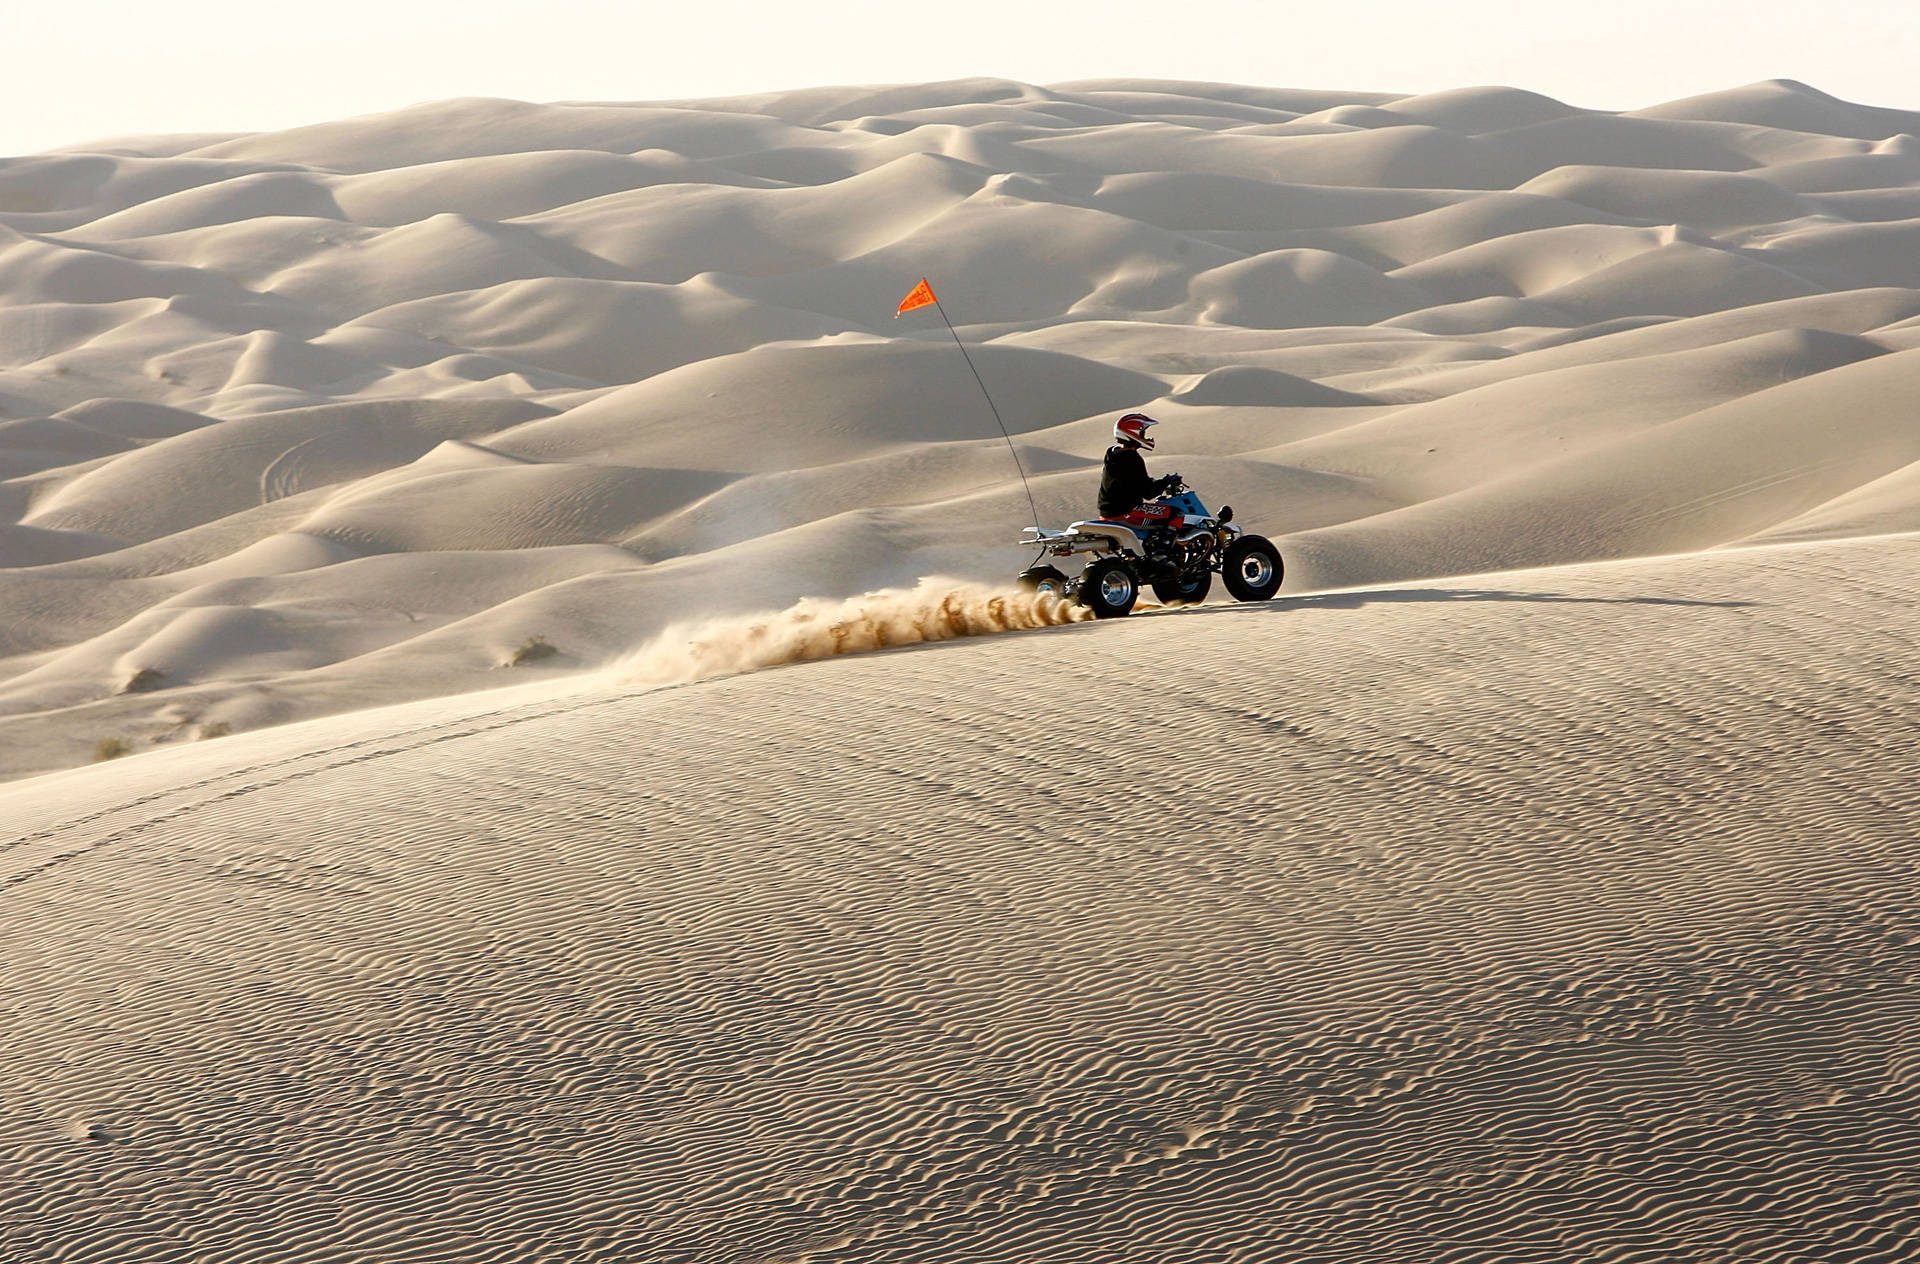 An ATV driver rides in the Colorado Desert at the Imperial Sand Dunes, also known as the Algodones Dunes. Imperial County firefighters and police officers patrol the area, and are partially compensated through the federal PILT program, which President Trump's budget would slash. David McNew/Getty Images